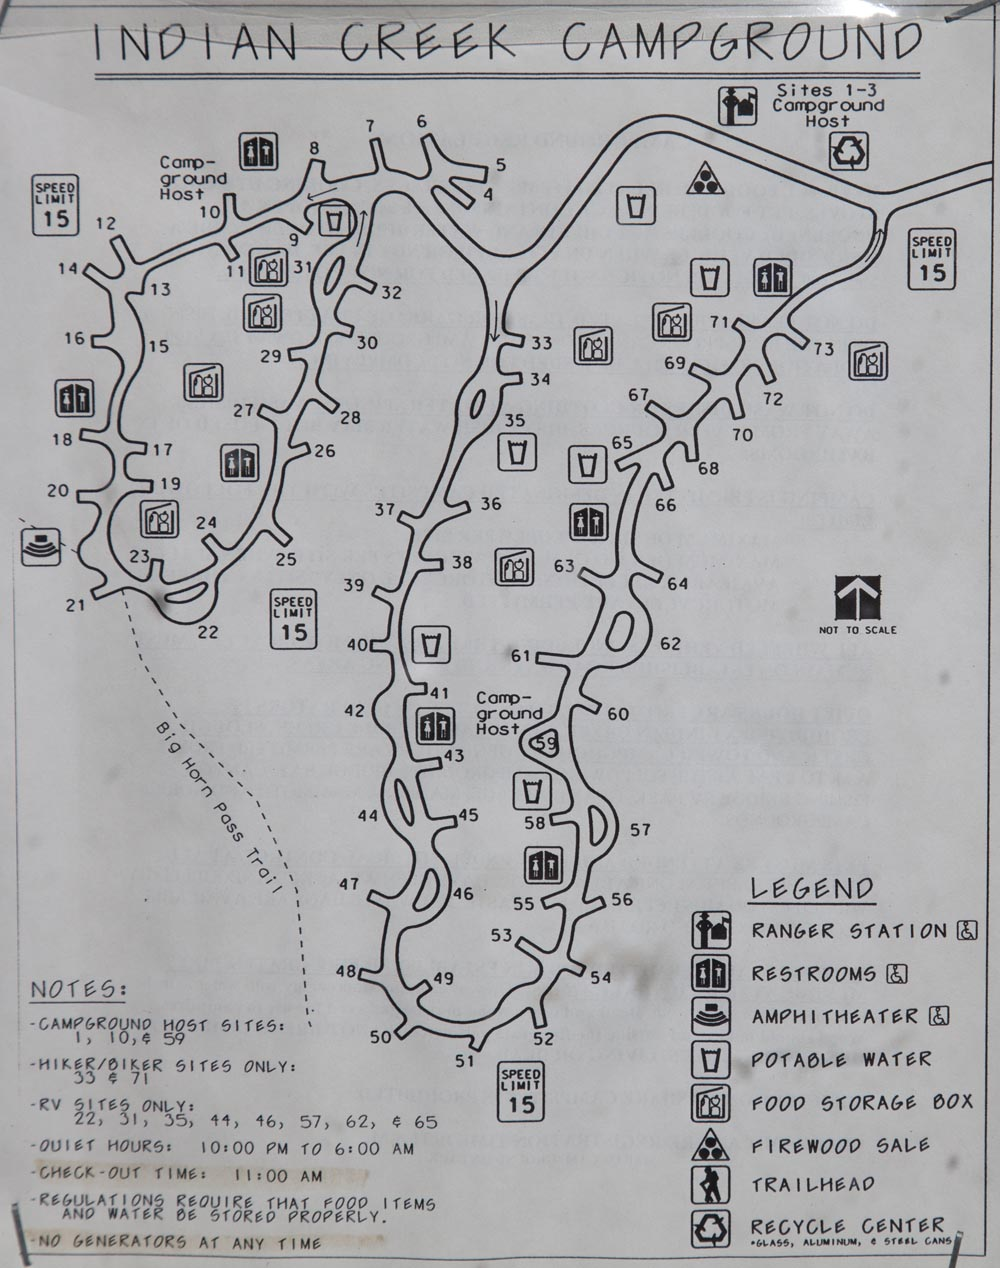 Indian Creek Trail Map Colorado on beaver creek trail map, twin sisters trail colorado map, island lake trail colorado map, crags trail colorado map, rainbow trail colorado map, waterton canyon trail map, three lakes trail colorado map,